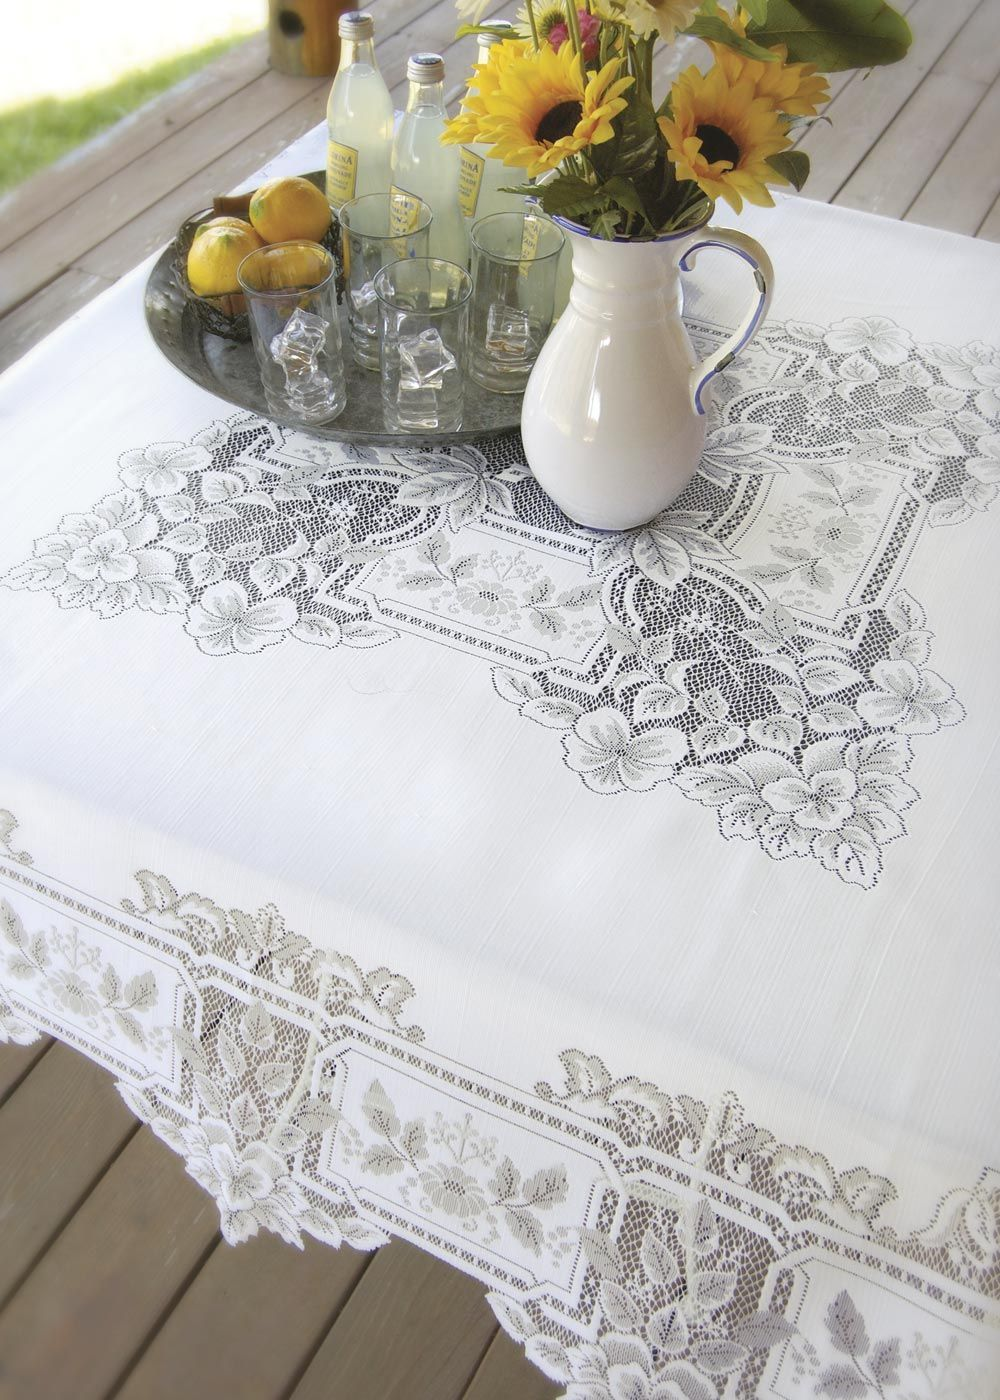 Heirloom Square Lace Tablecloth By Heritage Lace. #wedding #lace #decor